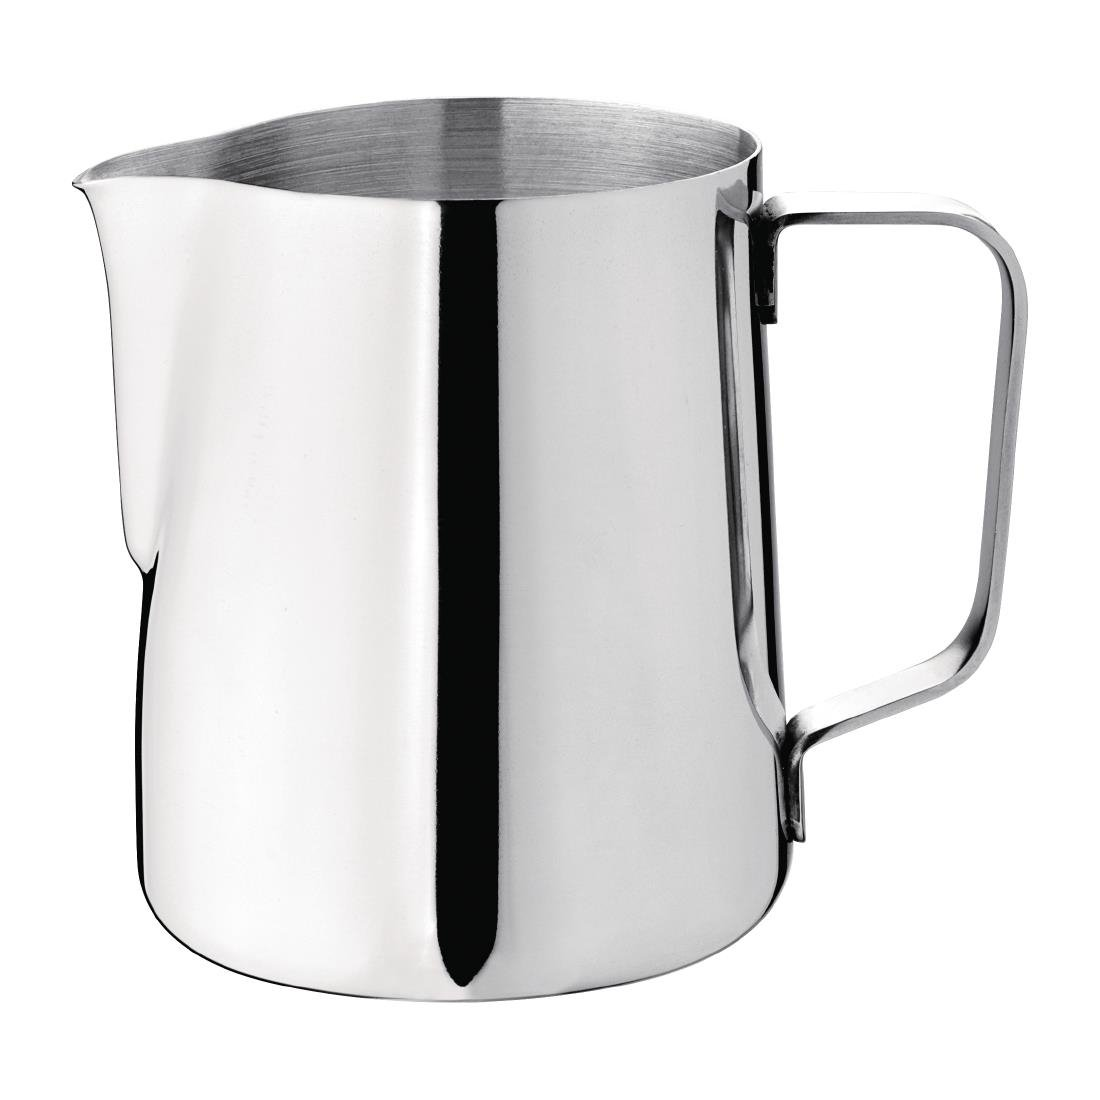 Milk or Water Jug 12oz/340ml